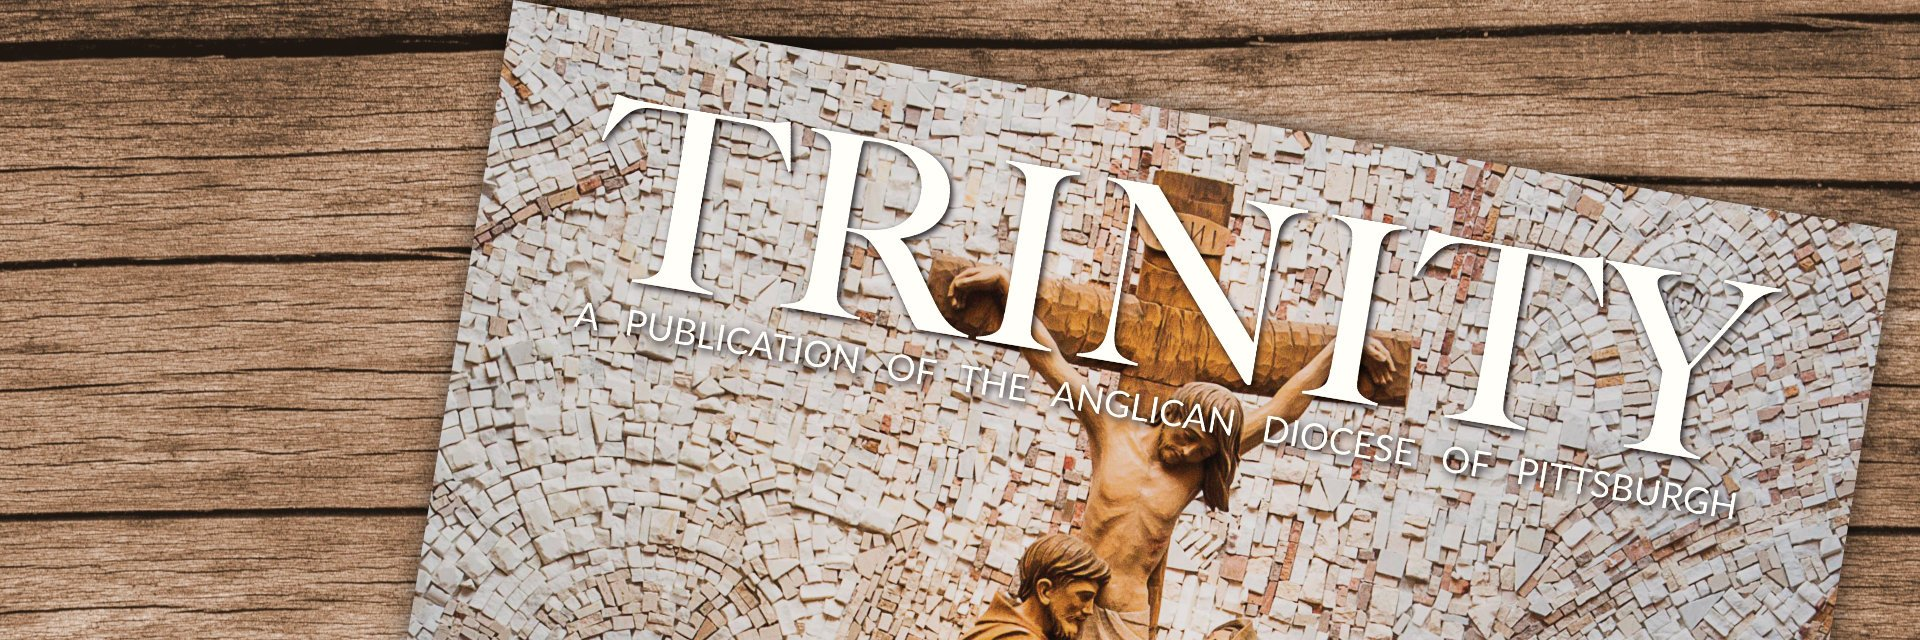 Trinity Magazine Easter Issue